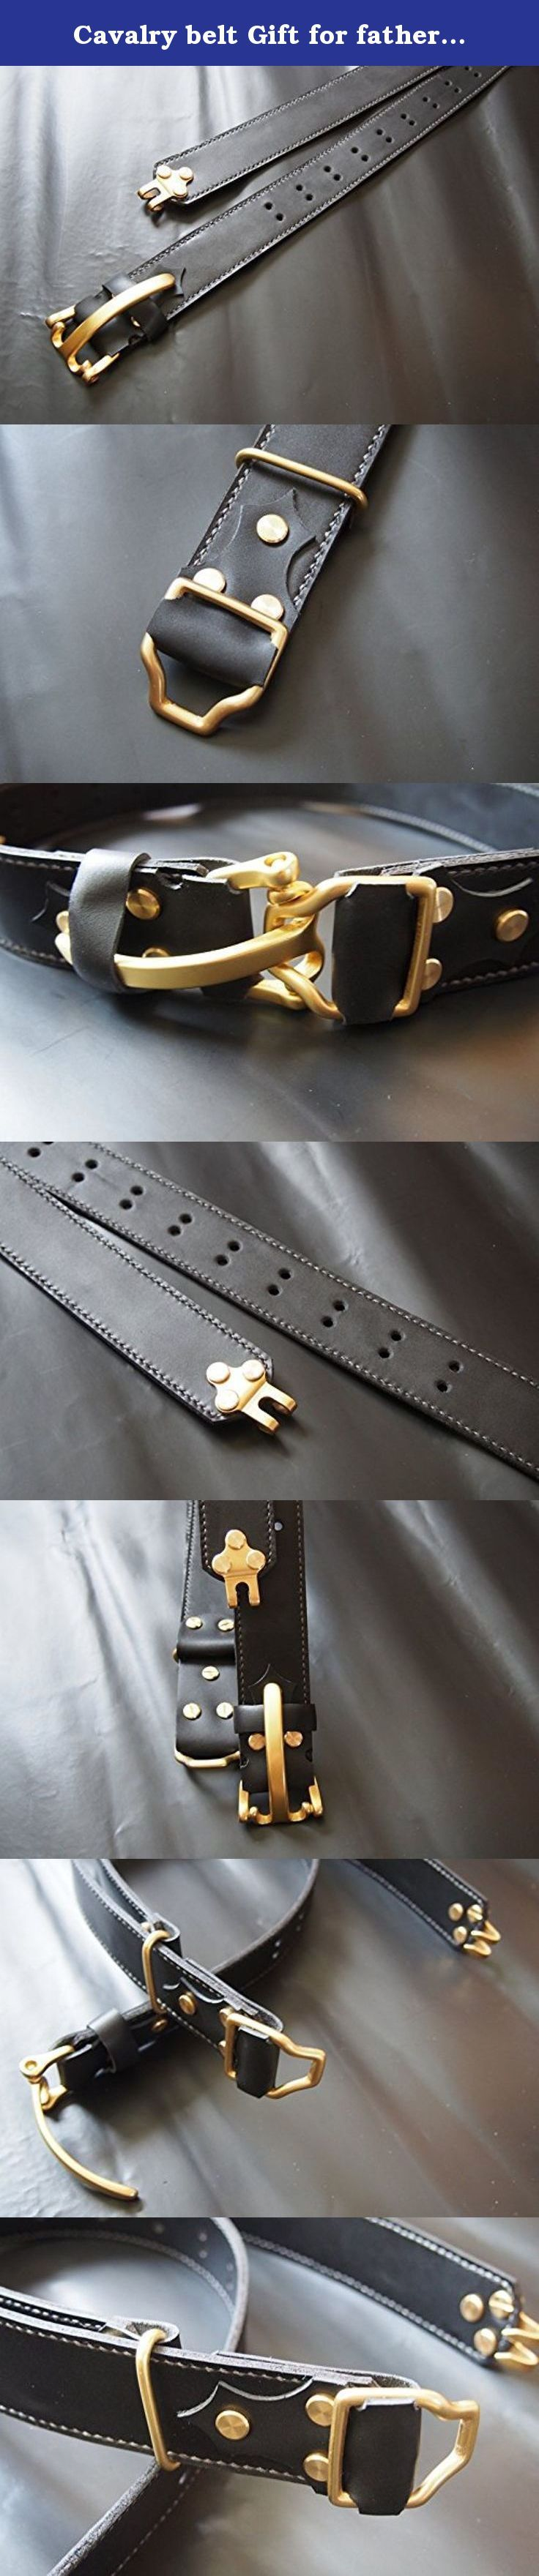 Cavalry belt Gift for father Brown Distressed Leather belt with decorative golden studs, groomsmen gift, groomsman gift, best man gift,men belt. Competitive price,excellent quality Unique handstitched leather skill 100% handmade leather items Worldwide shipping I used the traditional skill what it is lost art, so it is unique when you own it.